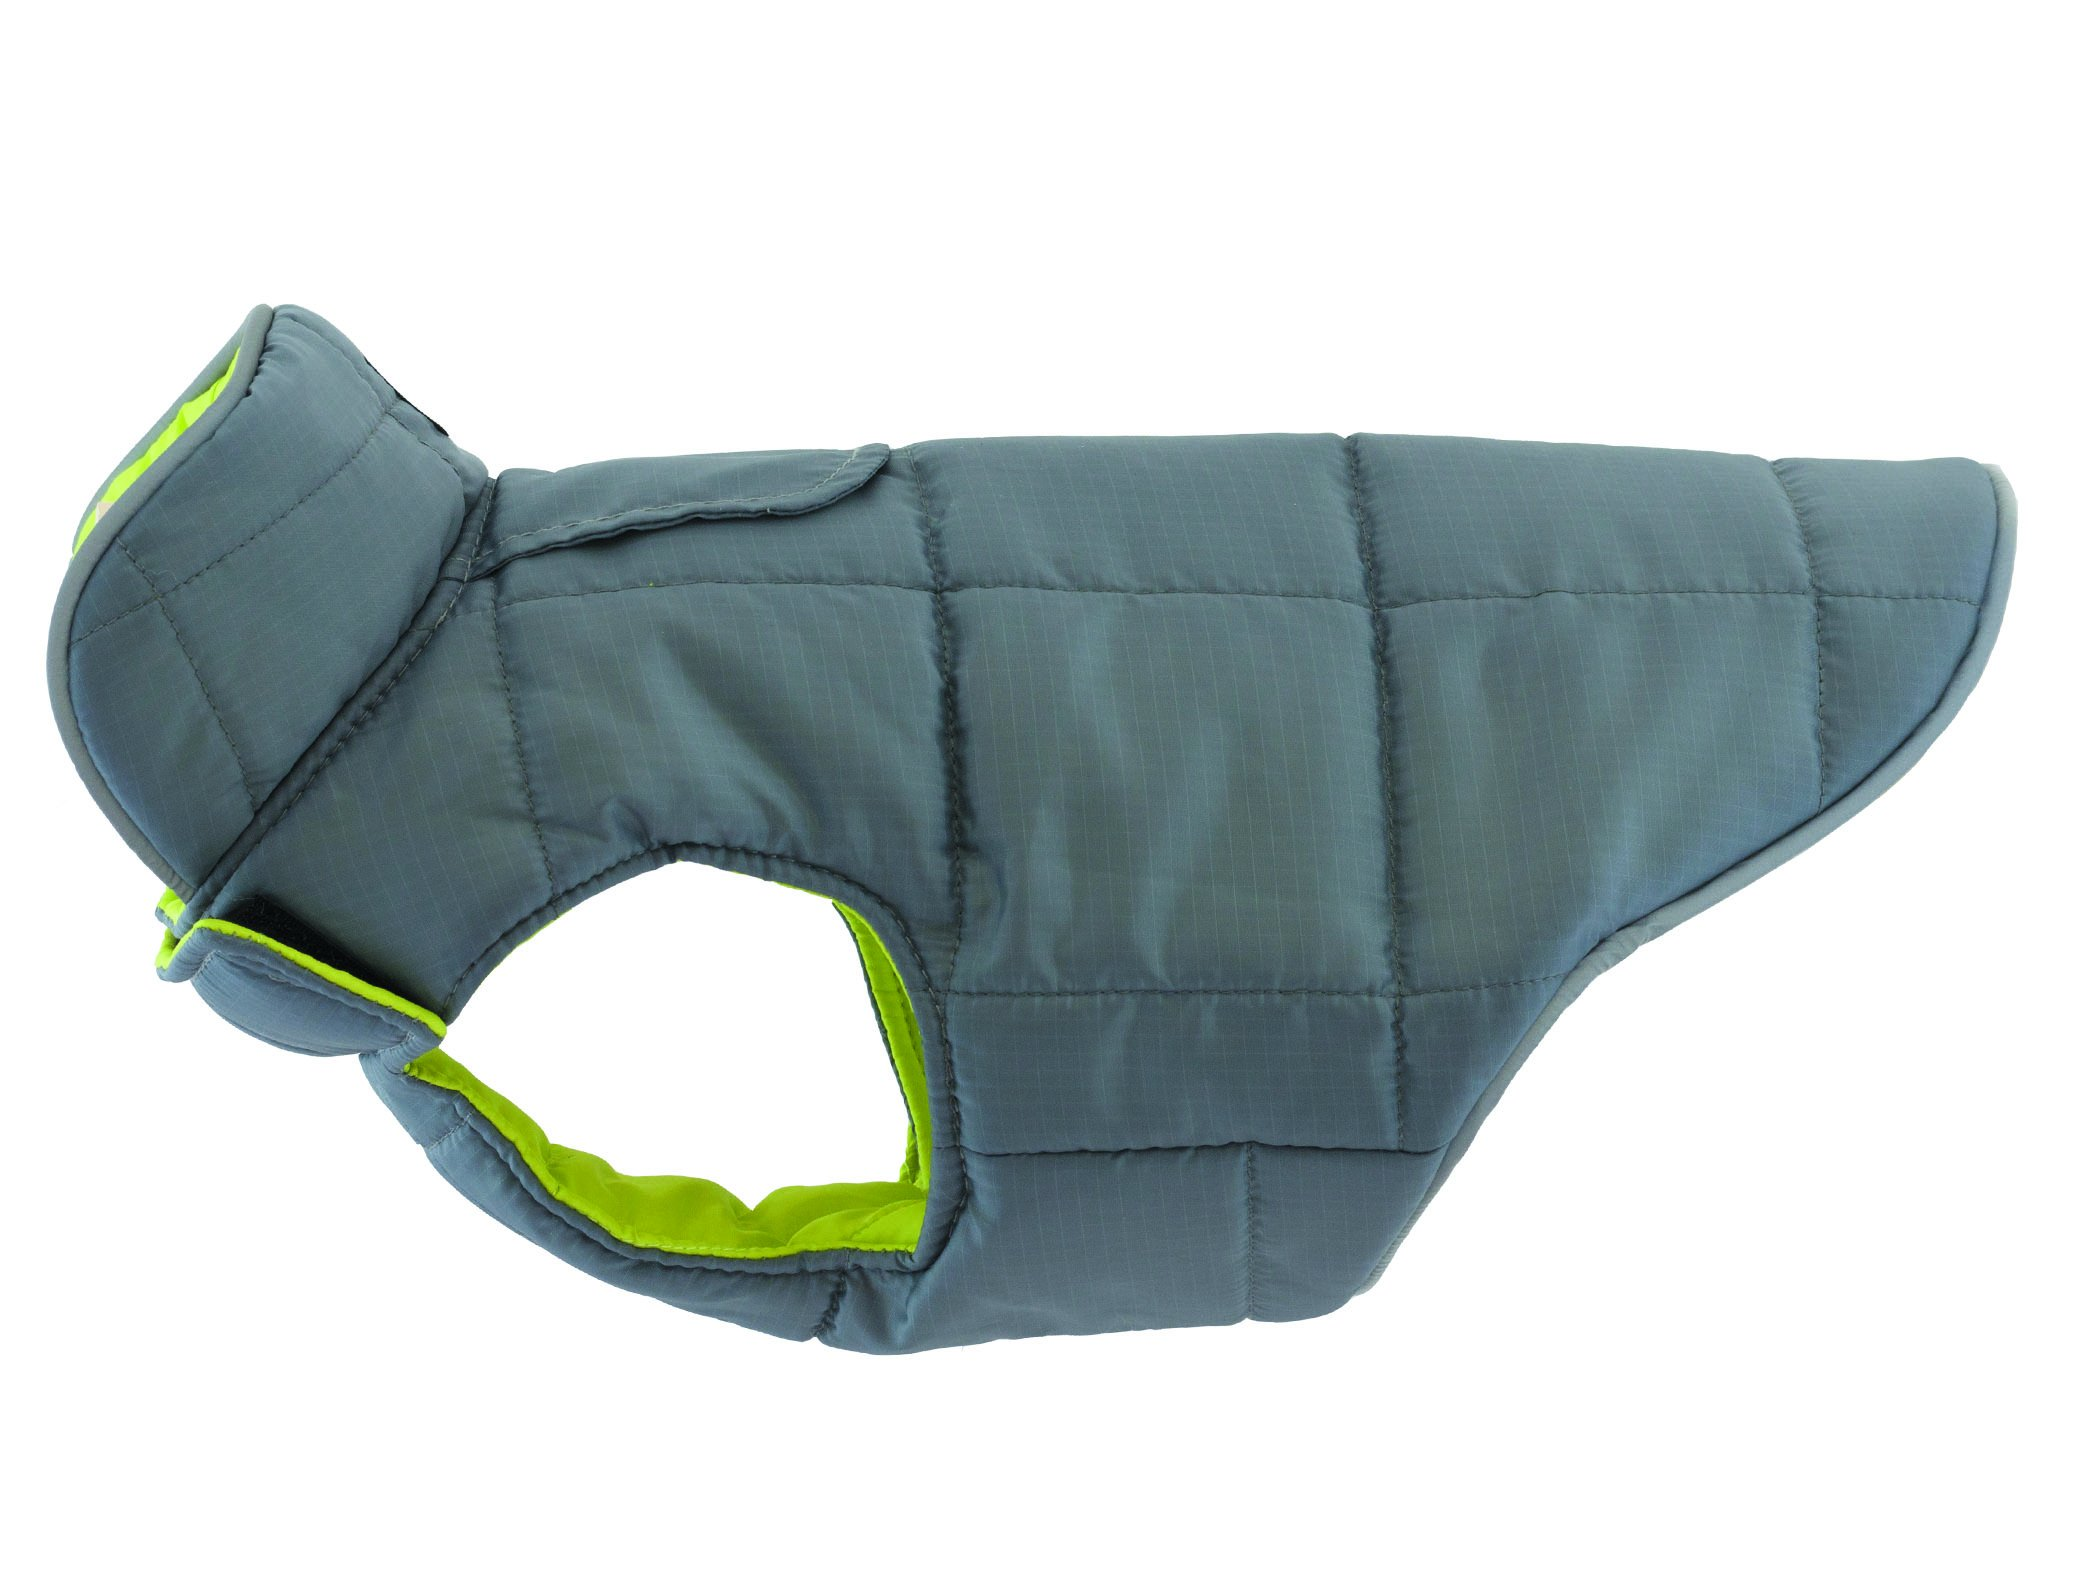 RC Pet Products Skyline Puffy Vest, Reflective, Water-Repellent, Reversible Dog Coat, Size 10, Lime/Charcoal by RC Pet Products (Image #2)